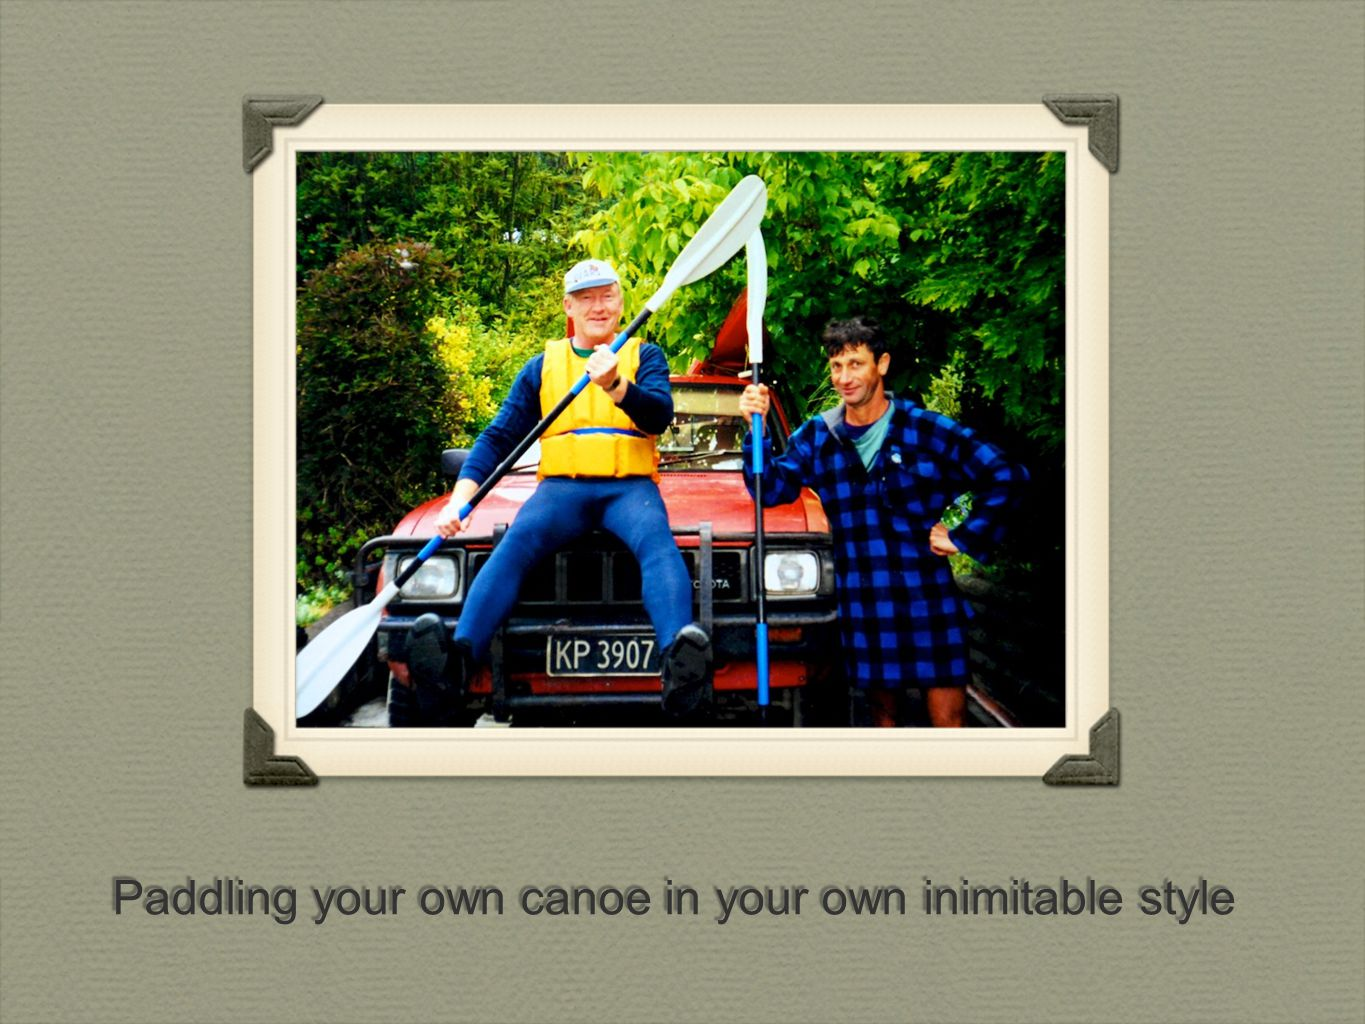 Paddling your own canoe in your own inimitable style